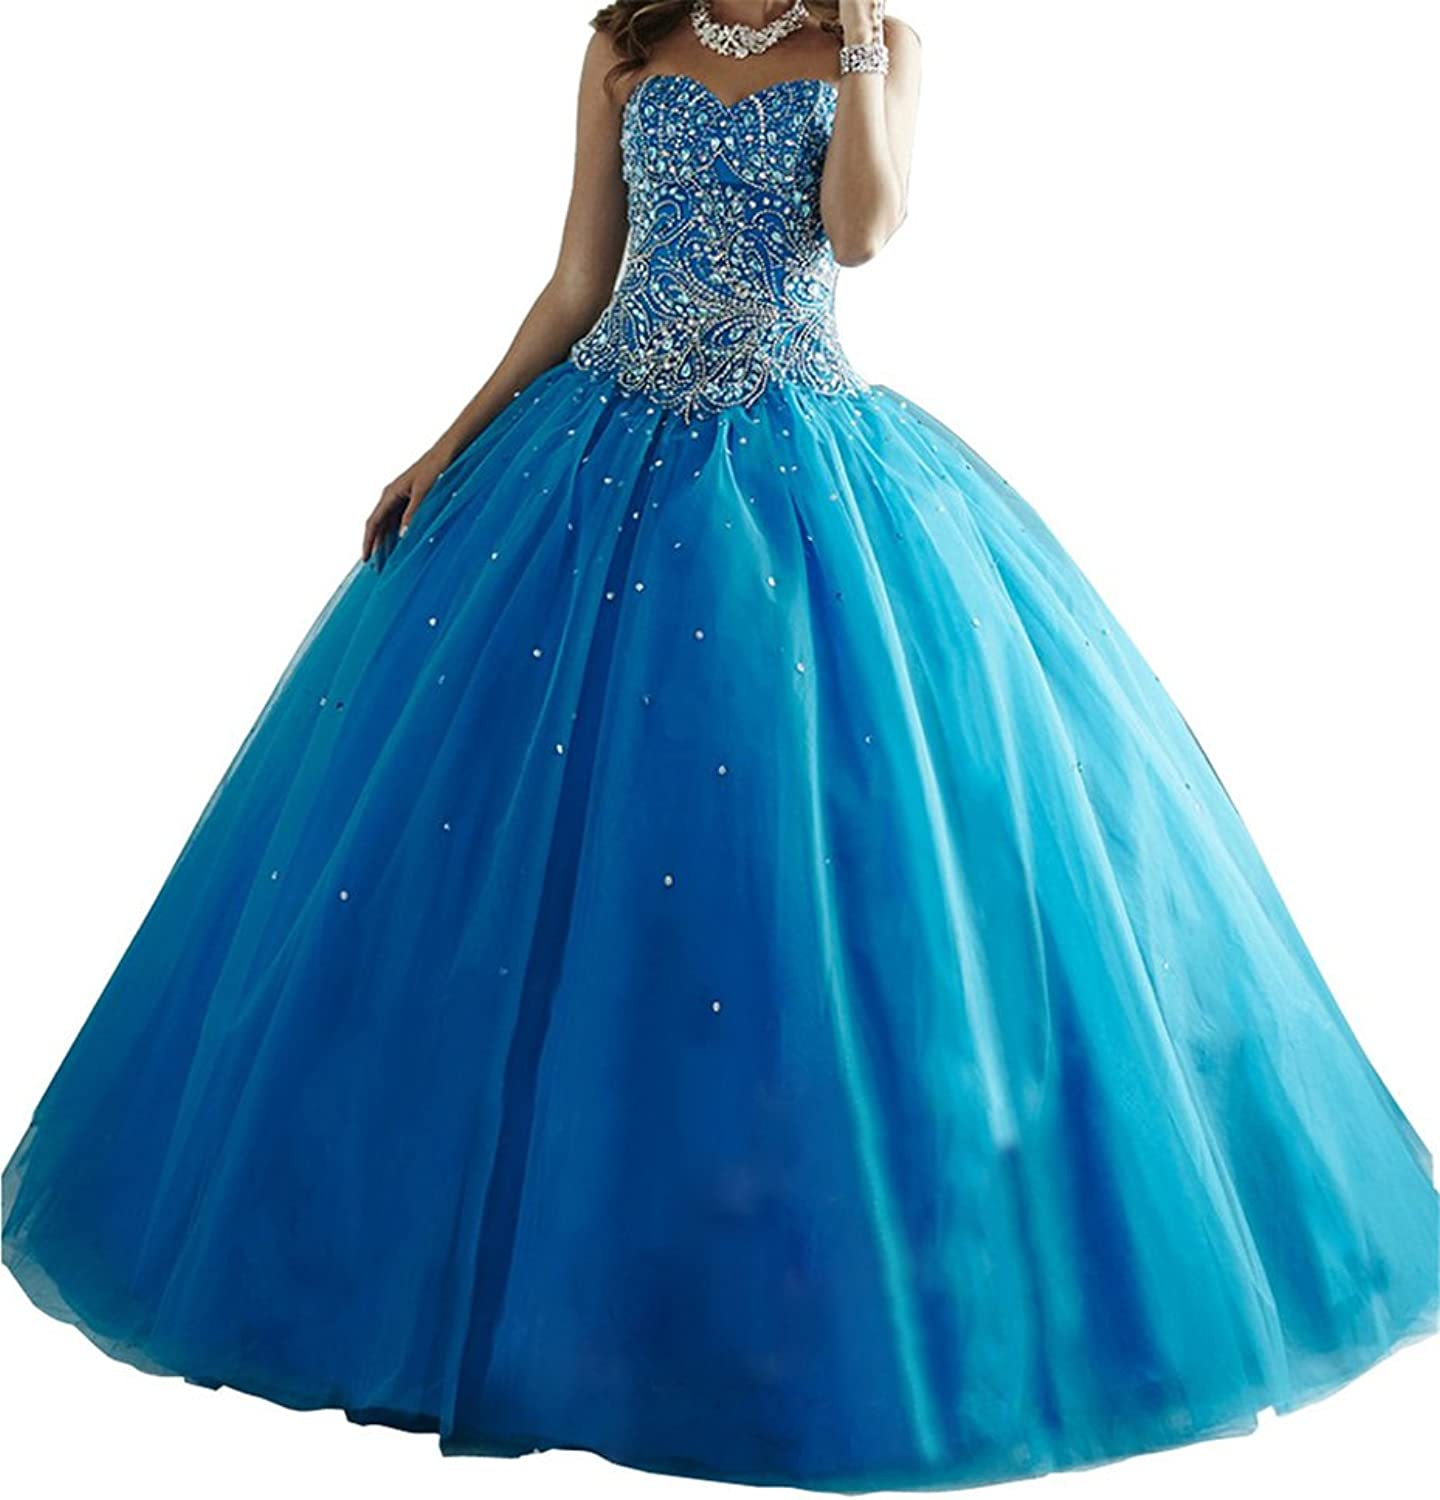 MCandy Turquoise Women Quinceanera Sweet Girls Party Gowns Long Dresses